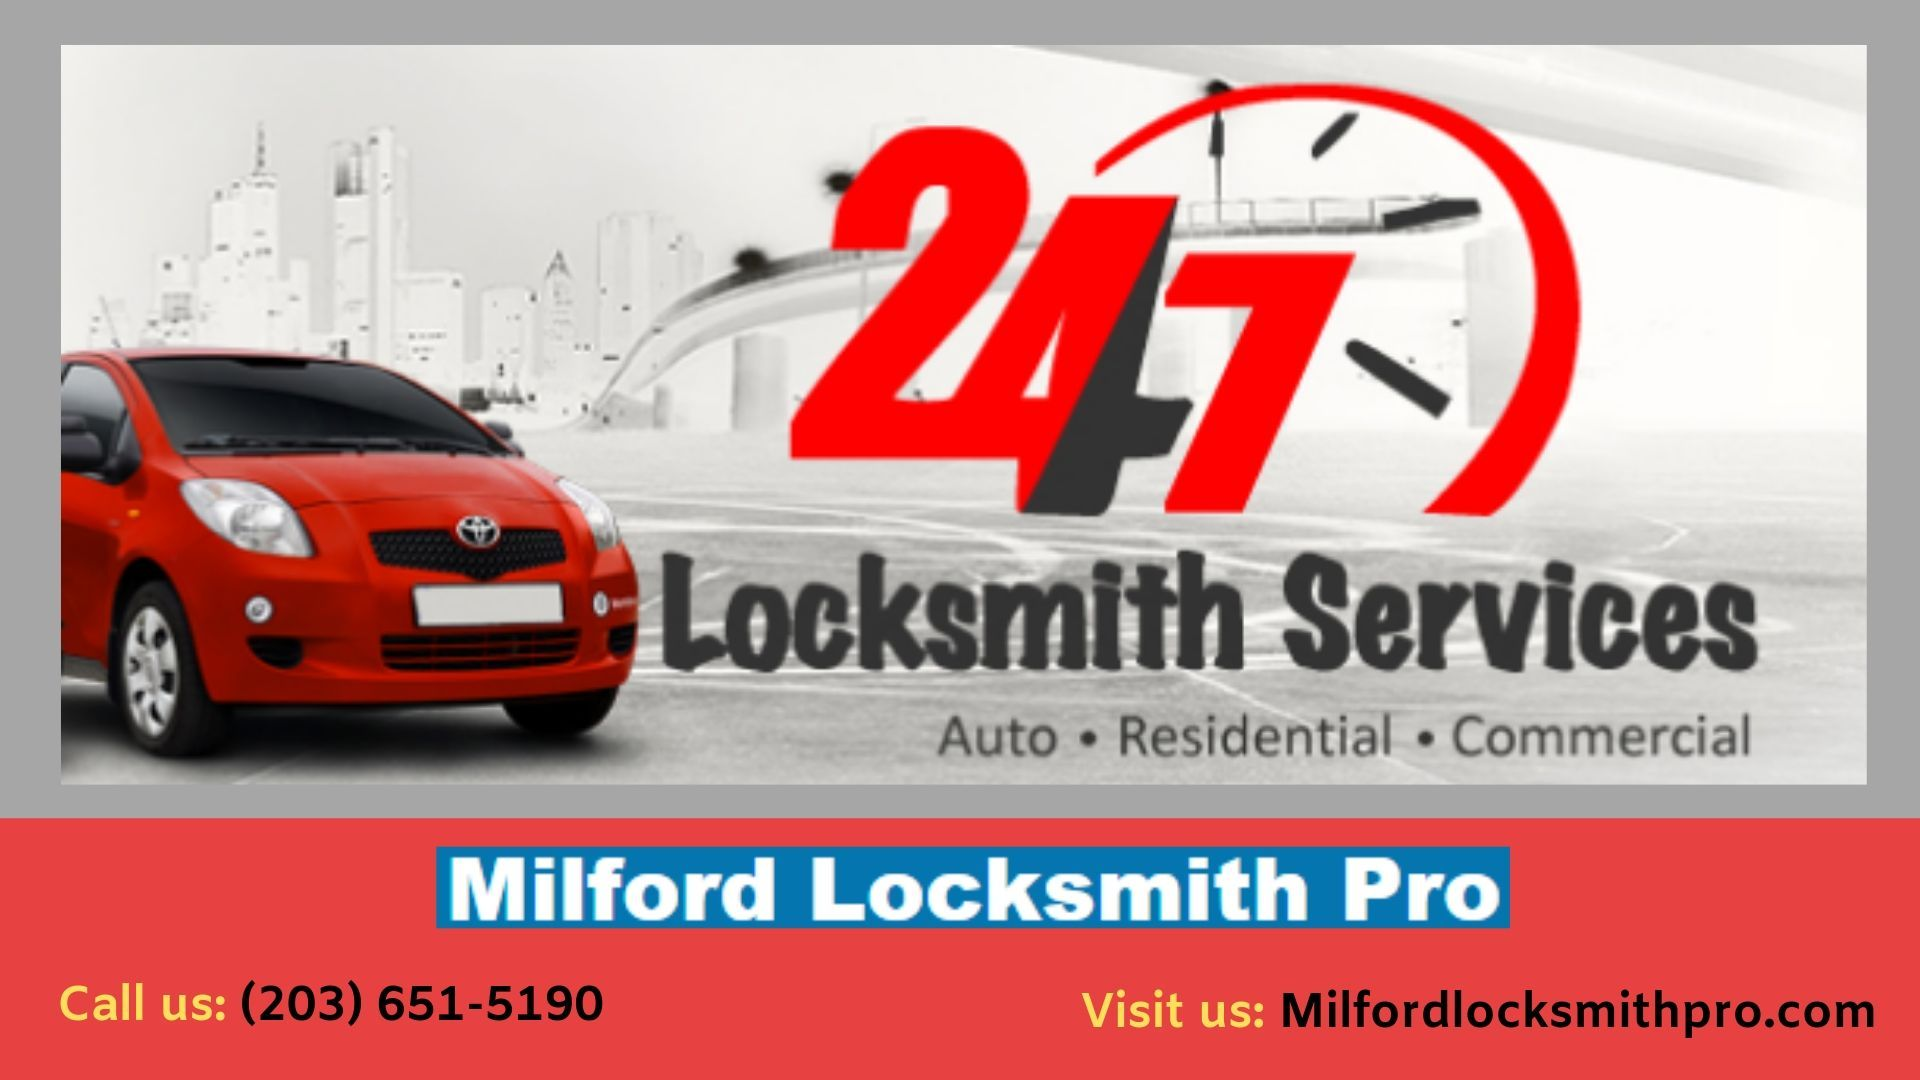 Are you looking for an expert 24hour locksmiths services